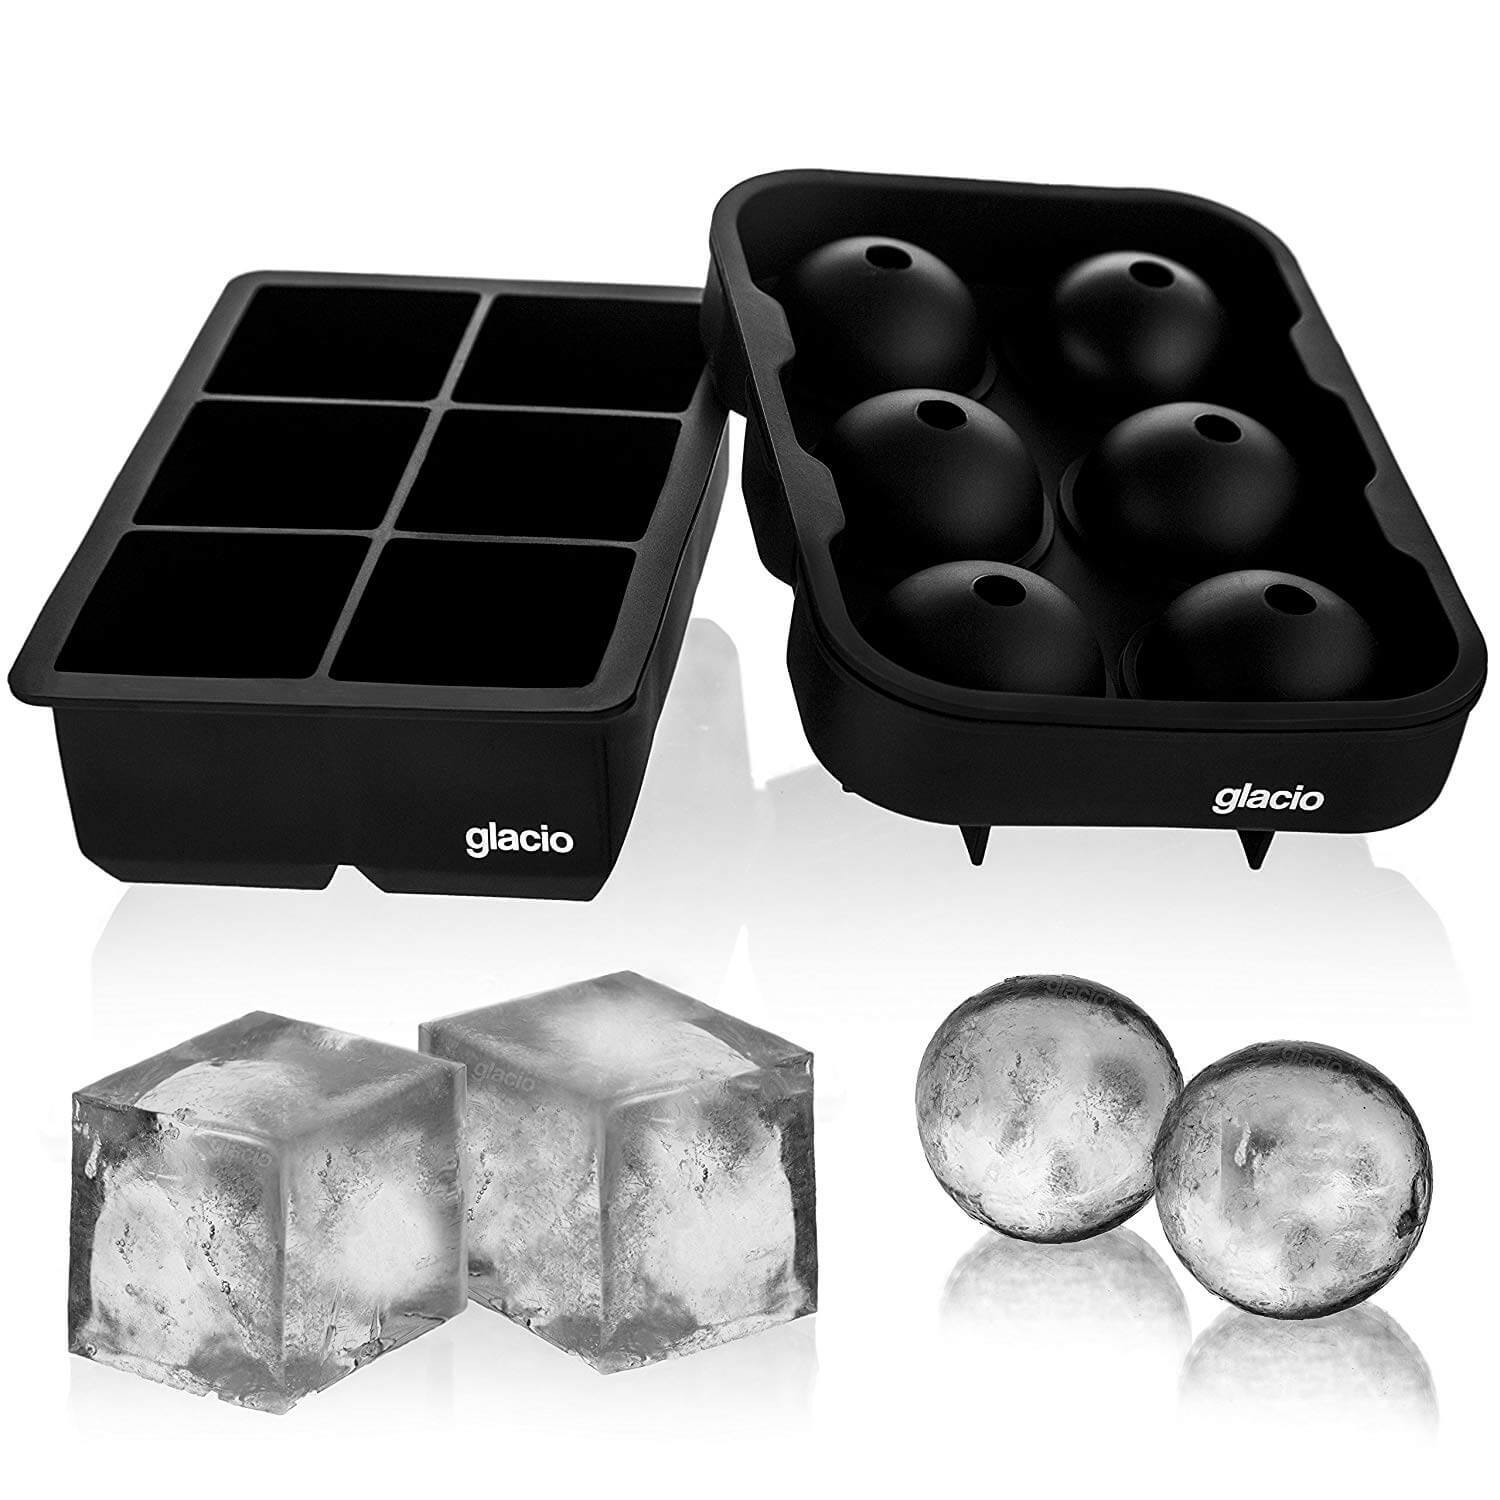 Glacio Ice Cube and Sphere Trays